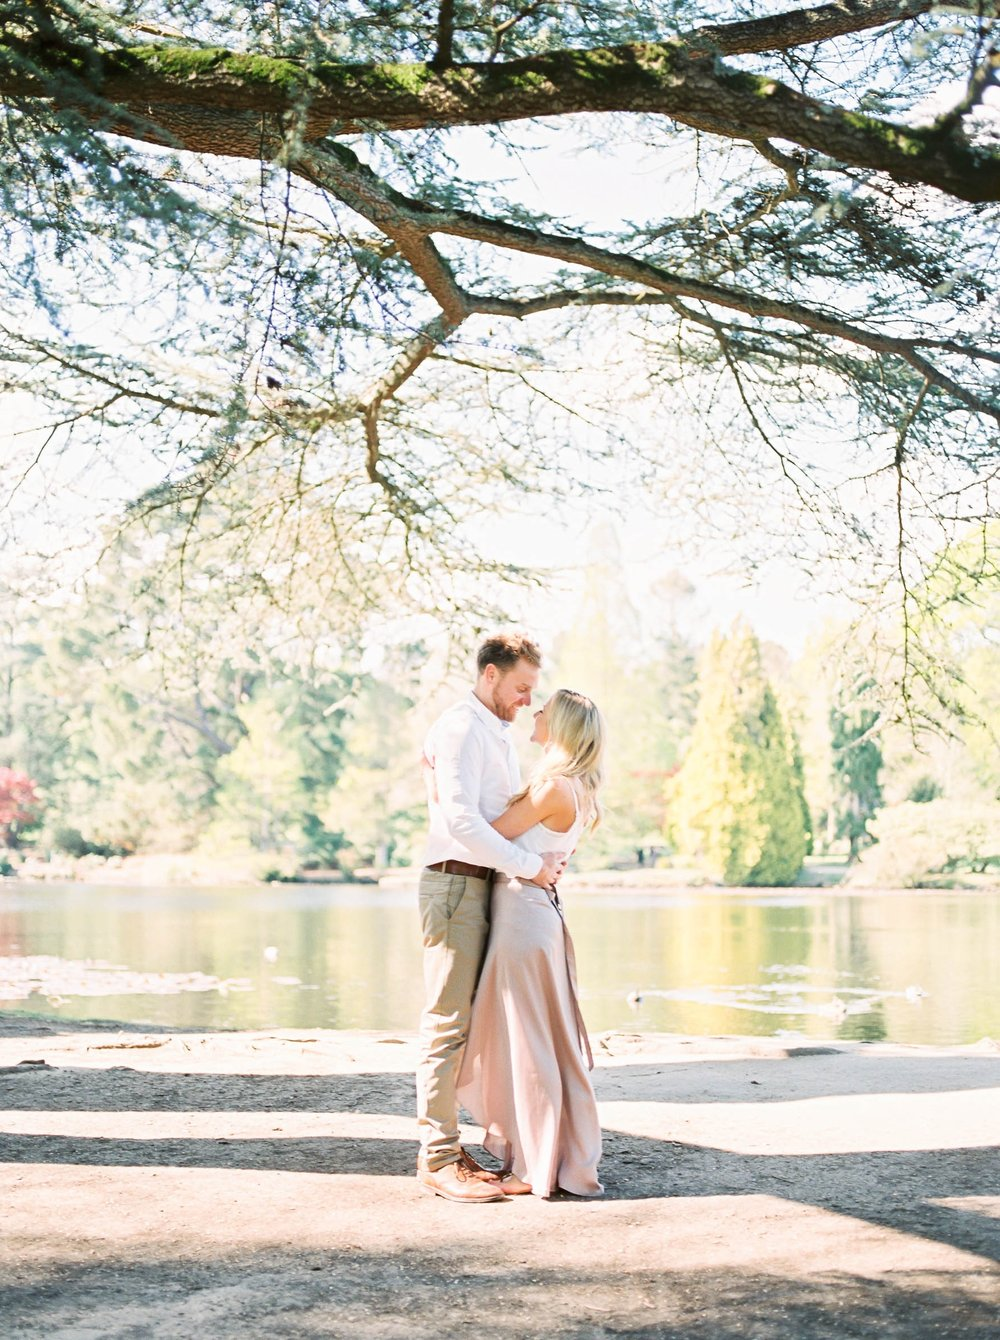 Amy O'Boyle Photography- Destination & UK Fine Art Film Wedding Photographer- Sheffield Park Garden National Trust Spring Engagement Shoot-22.jpg